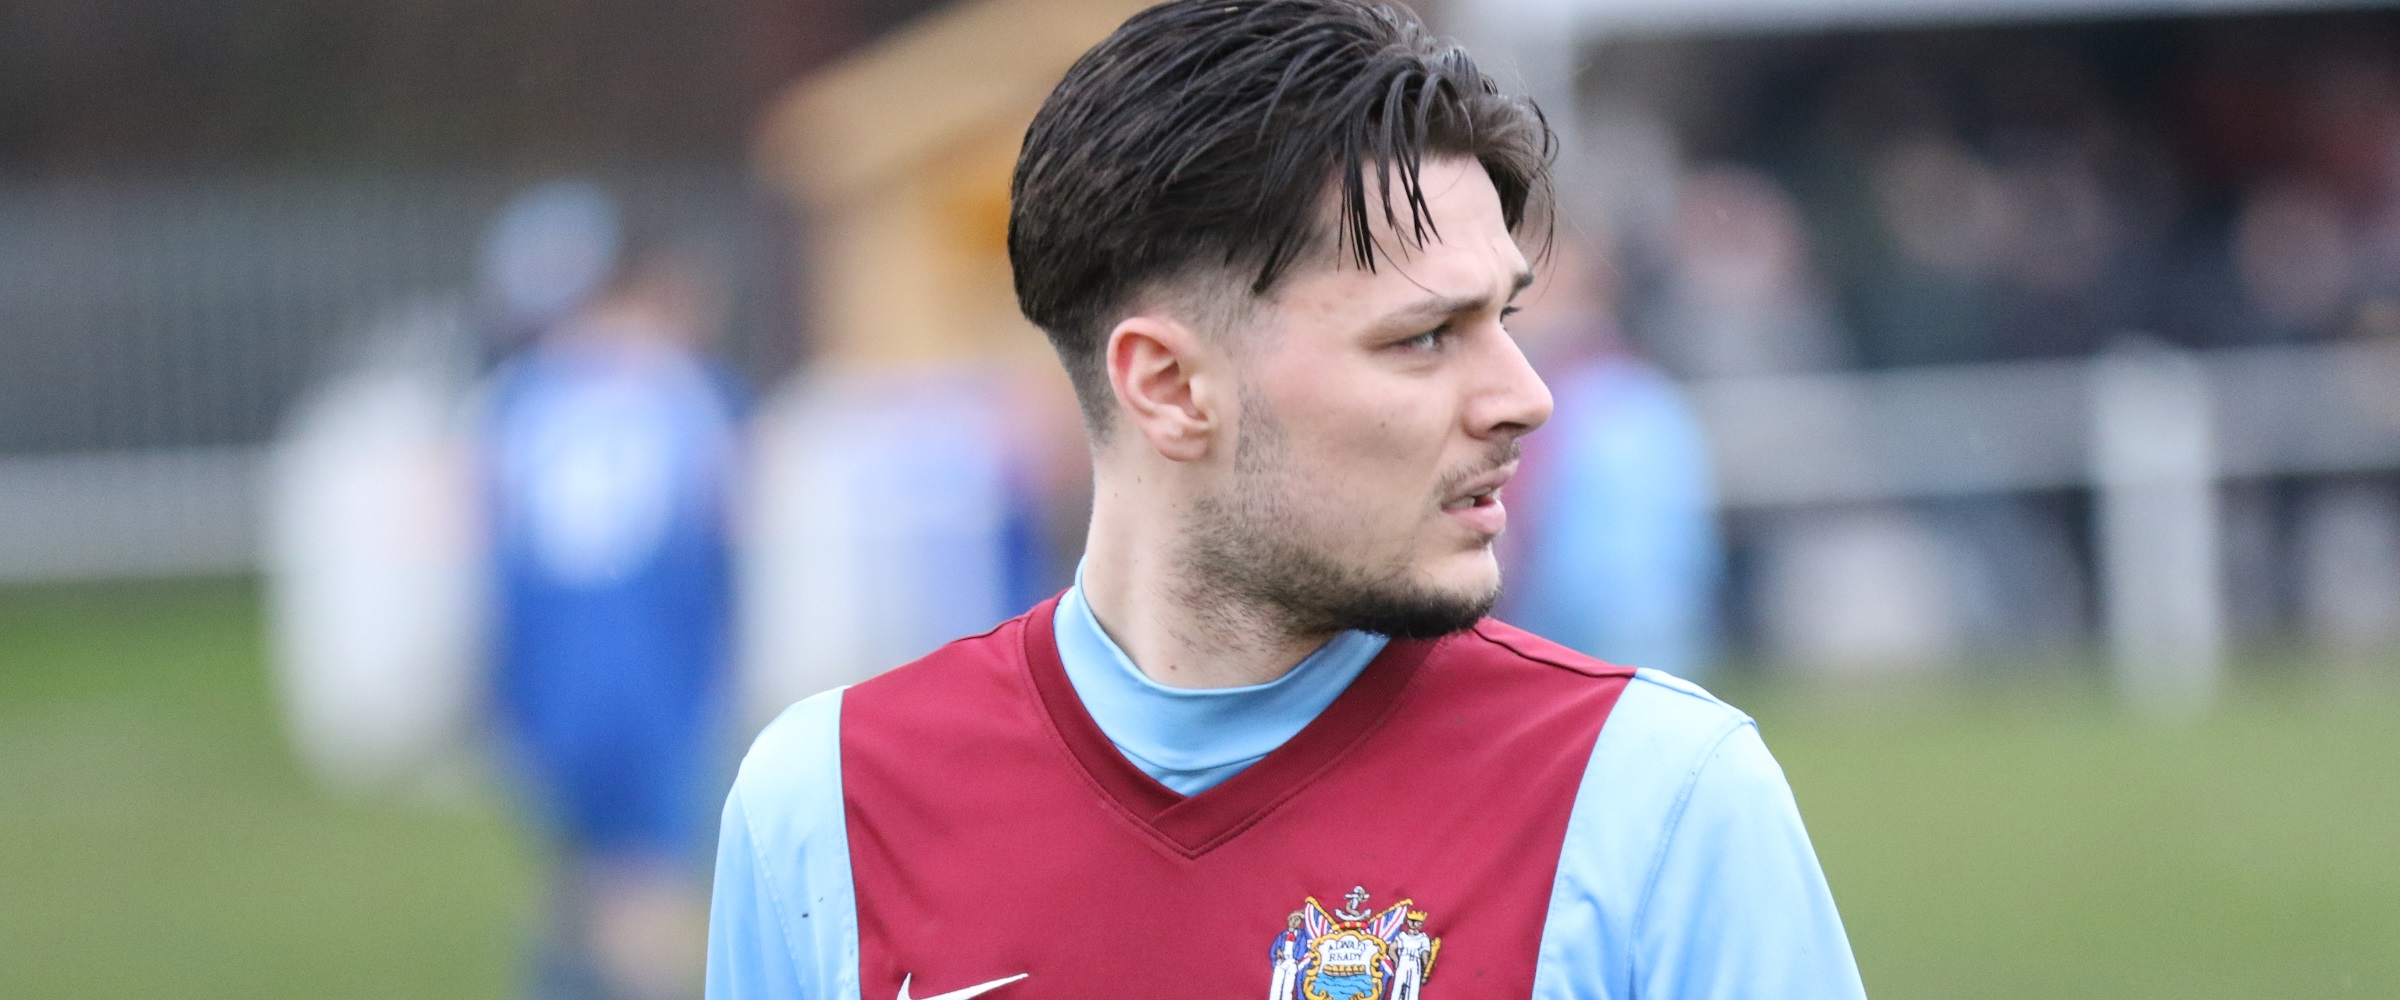 VIDEO: John Grey – Support at Mariners Park is 'breathtaking'